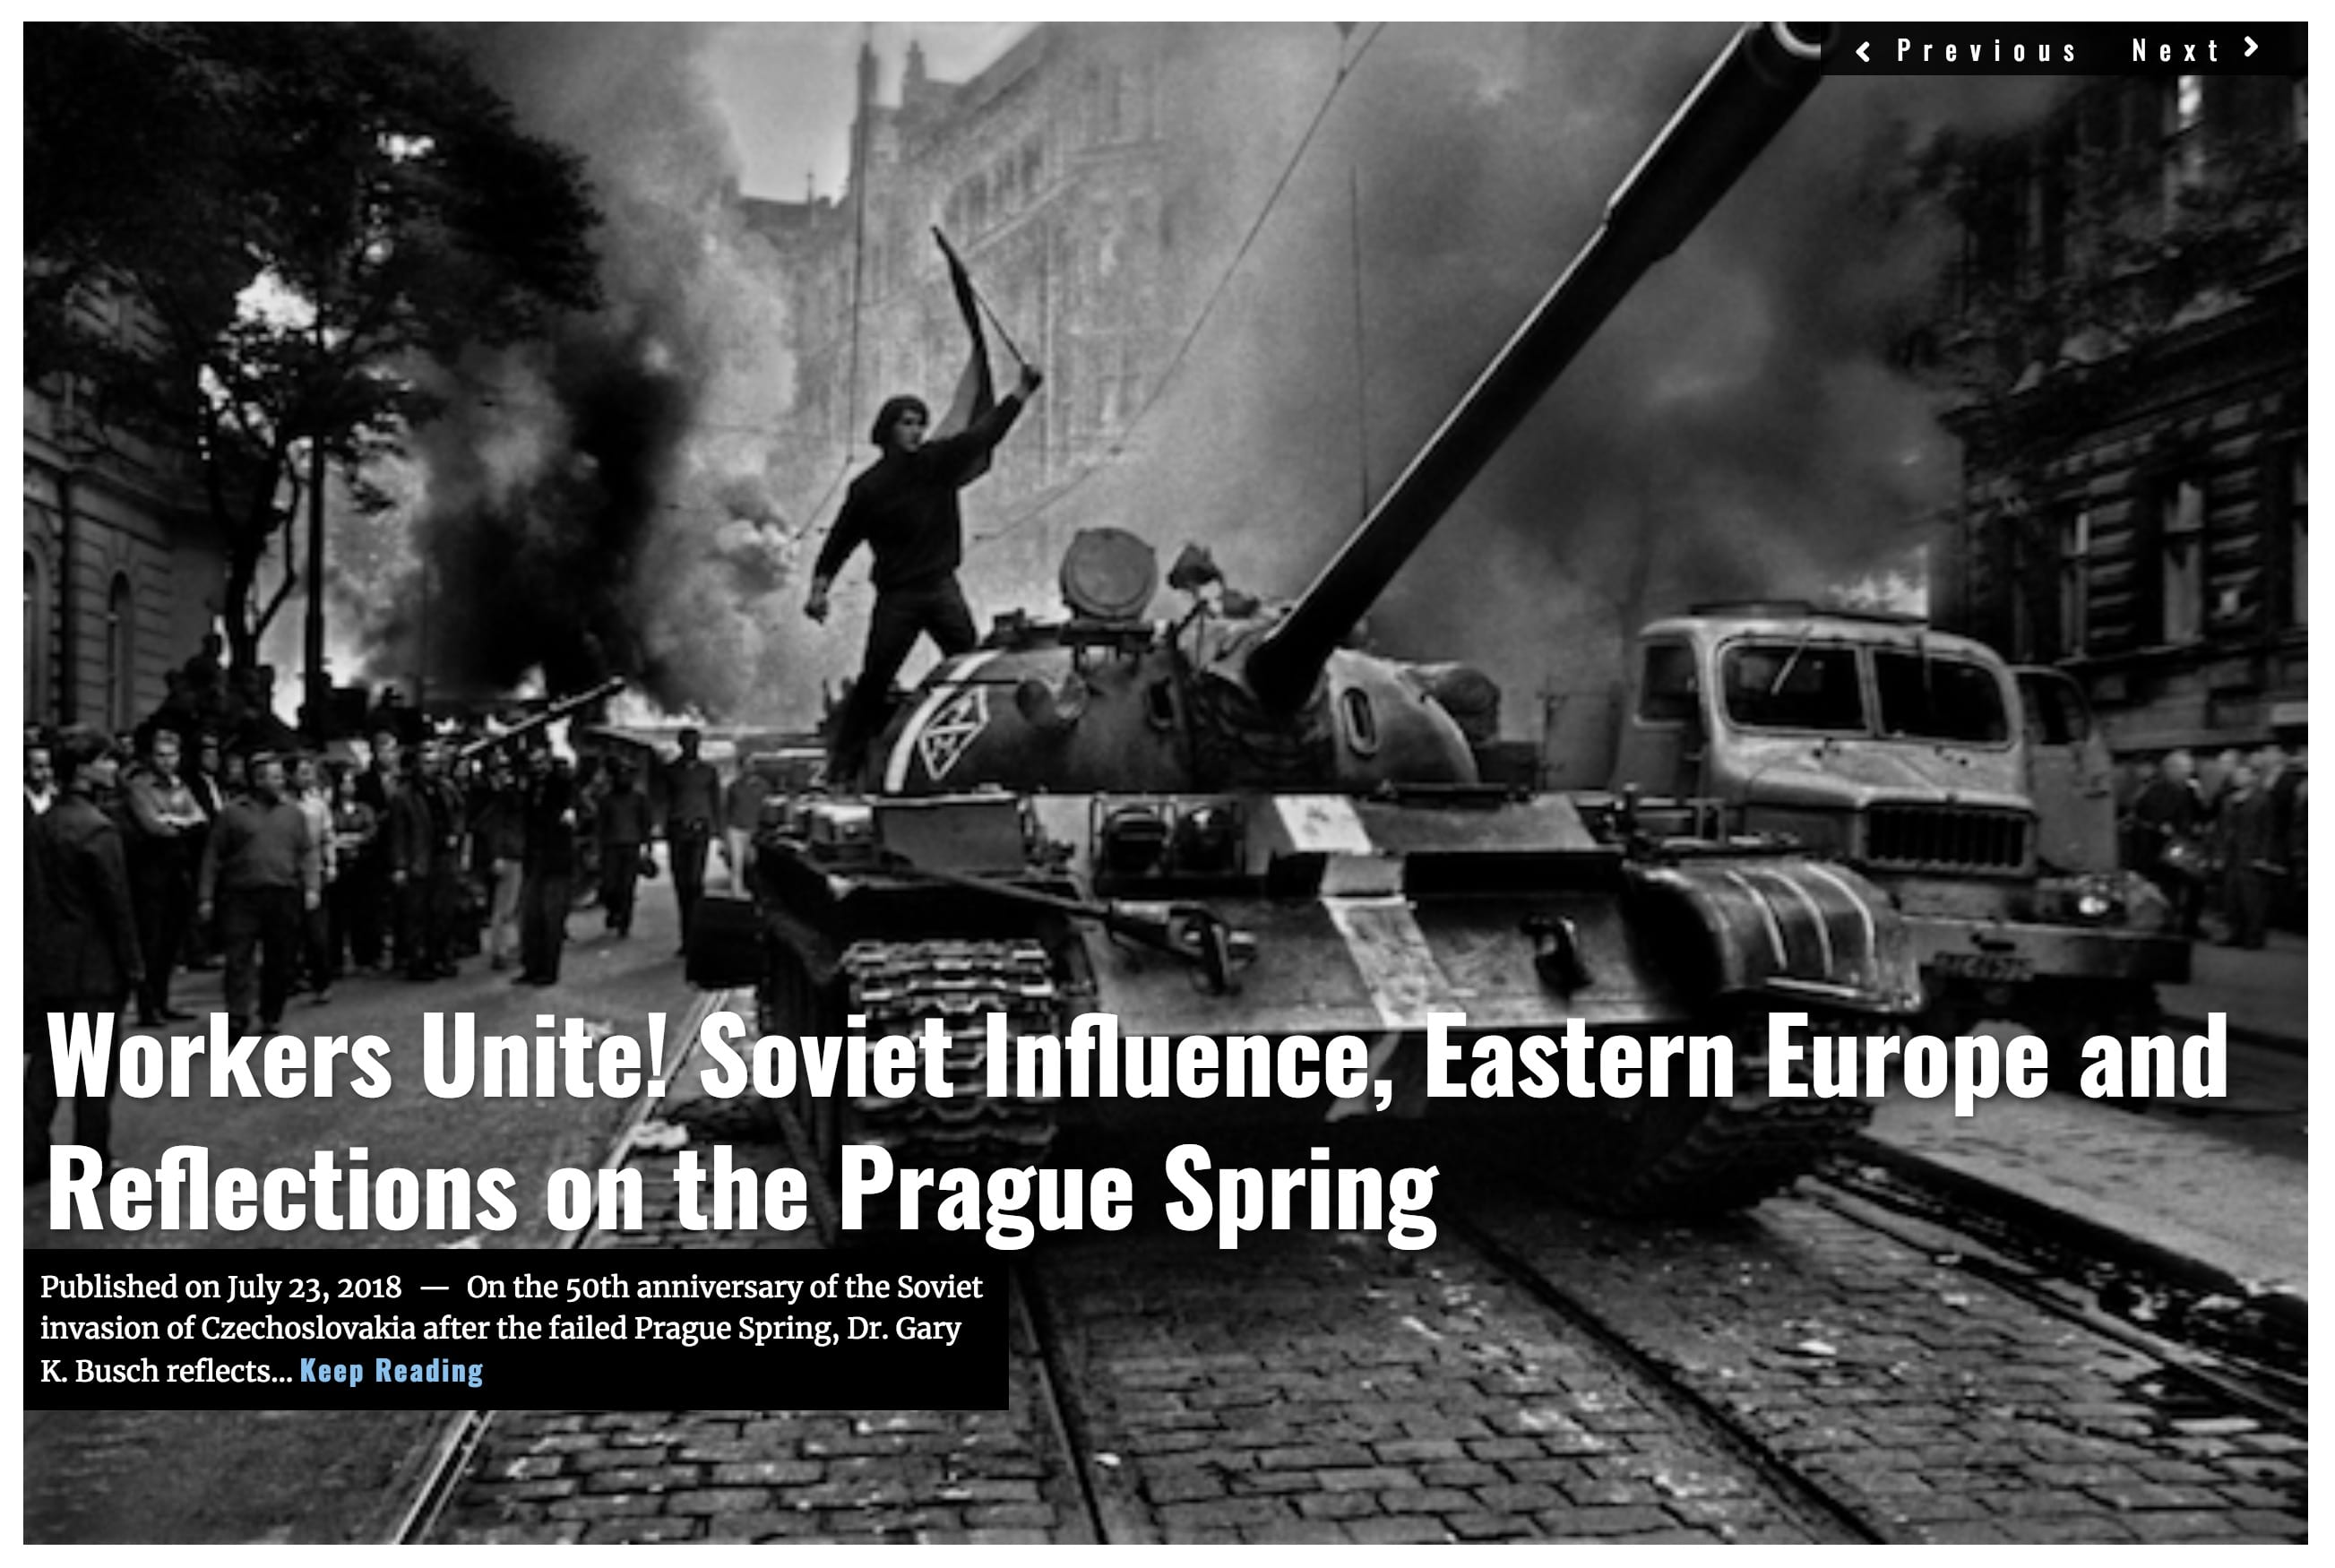 Image Lima Charlie News Headline Workers Unite Prague Spring JUL 23 2018